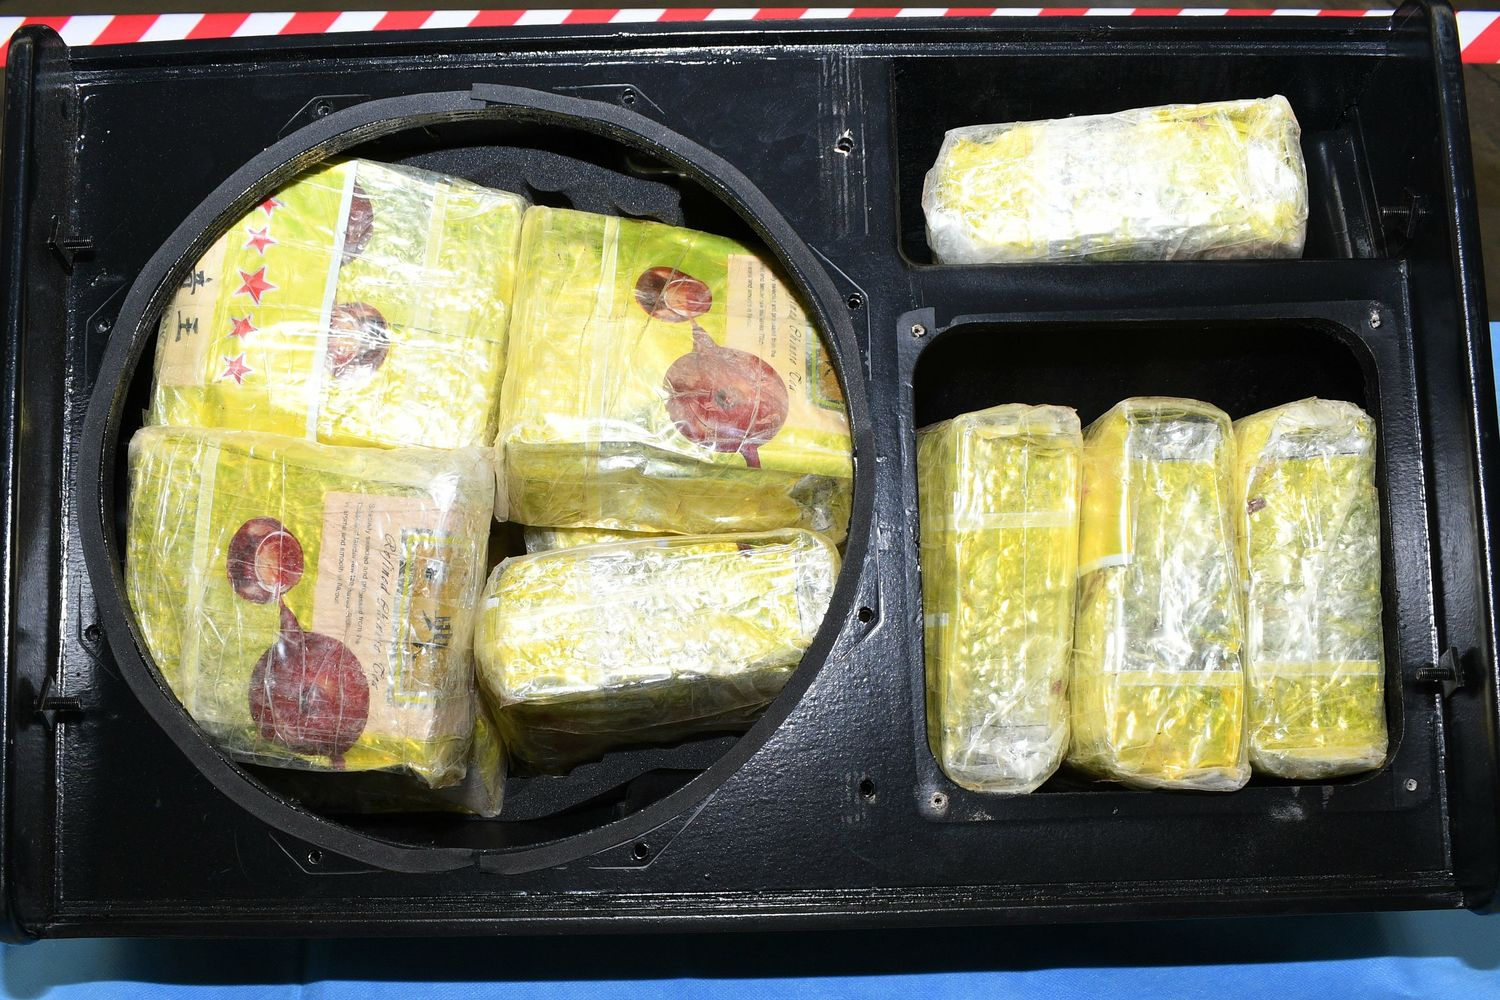 Some of the 1.8 tonnes of methamphetamine hidden in speakers shipped from Thailand is shown after it was seized by Australian Border Force on Friday. (Australian Federal Police via AP)